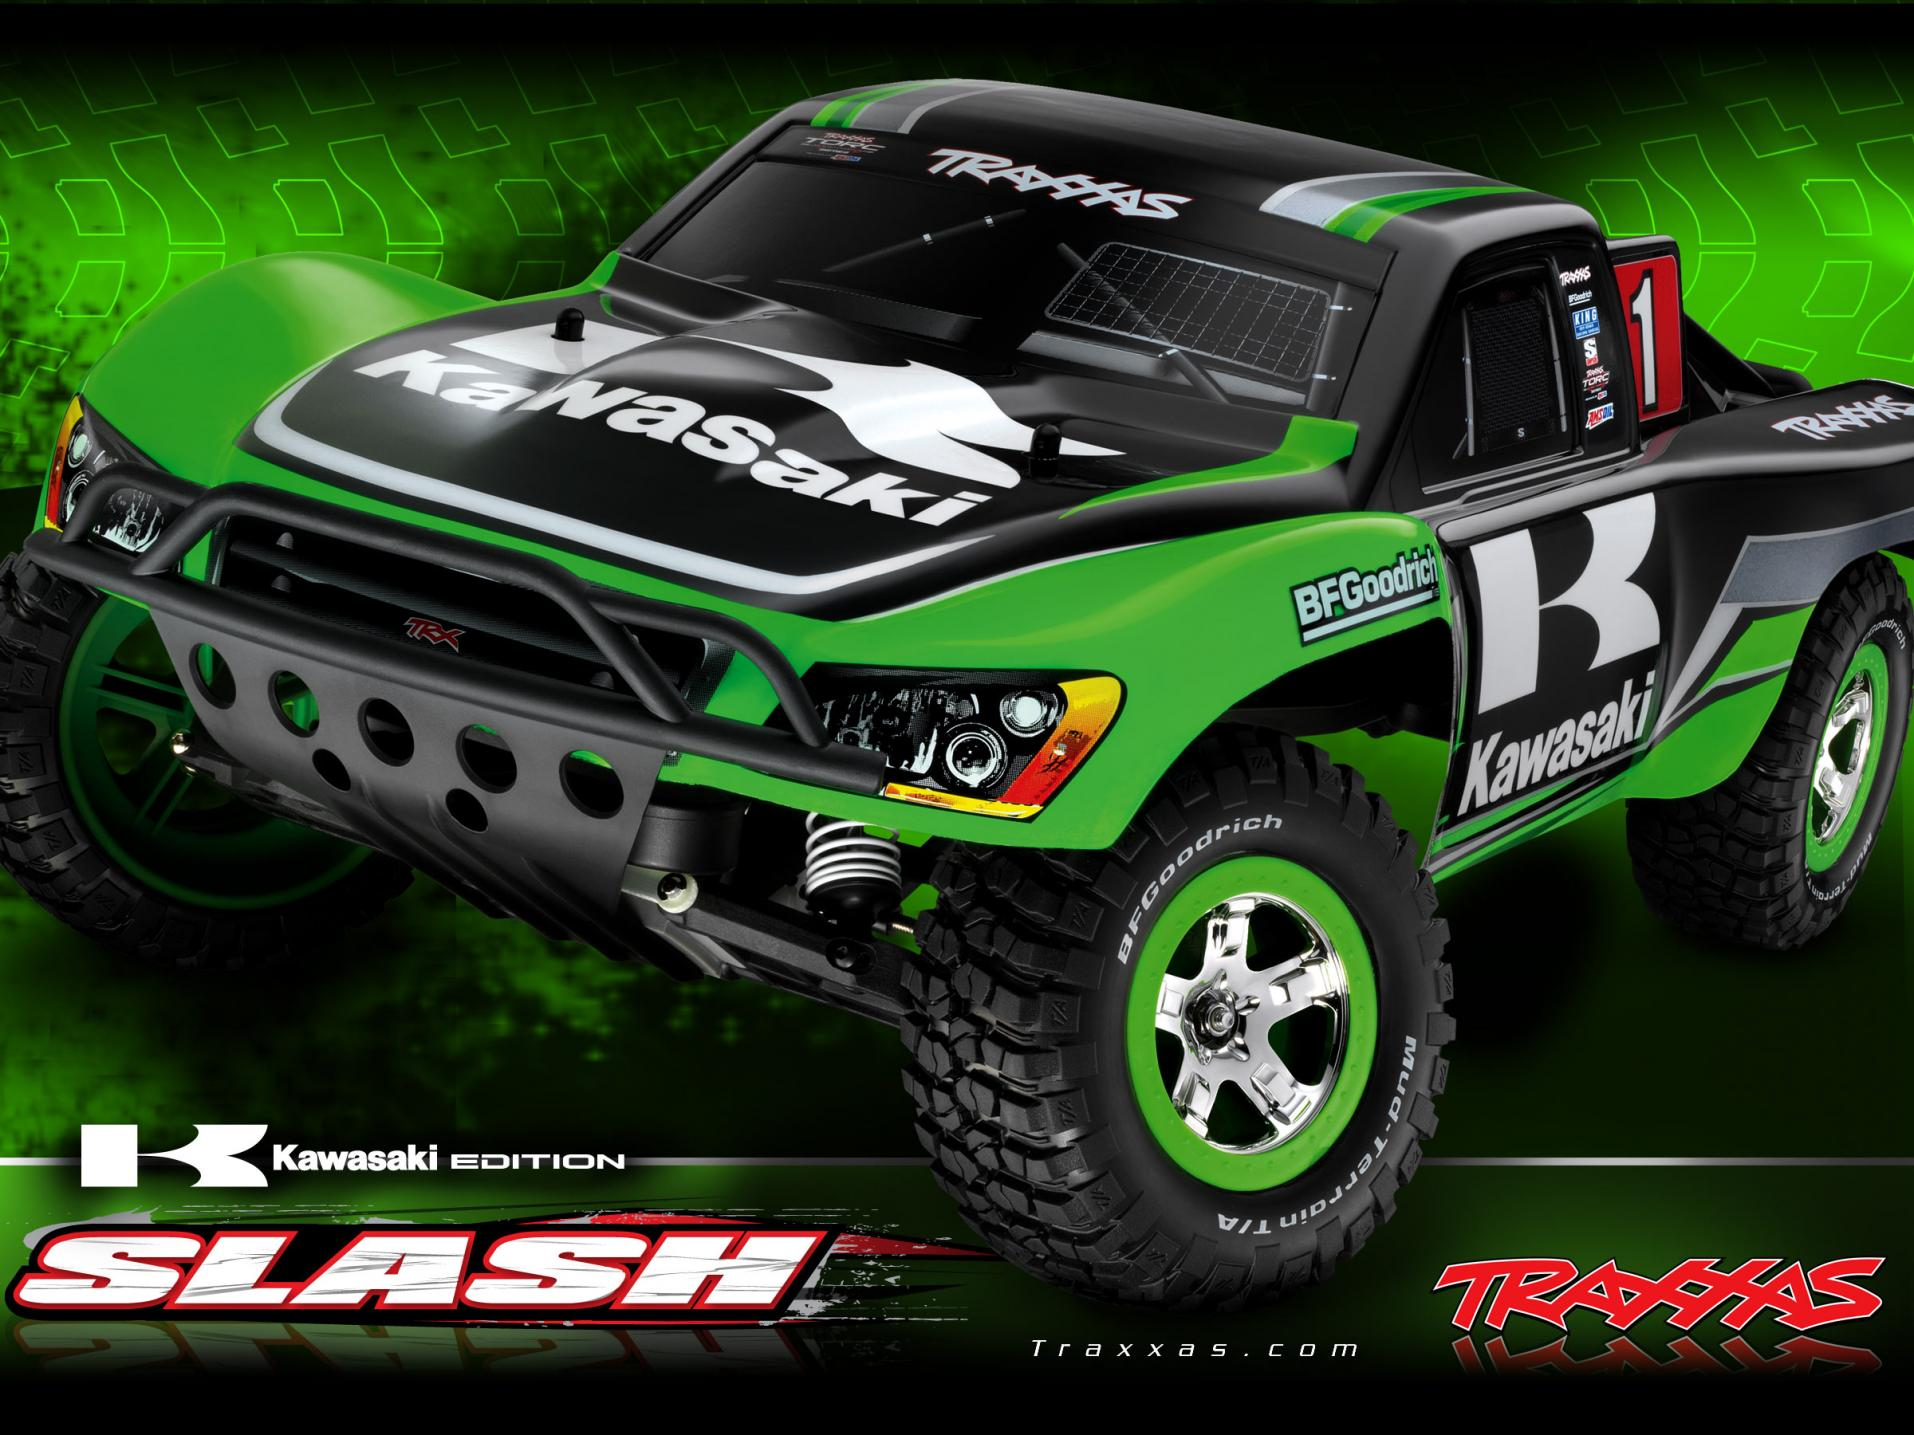 BNIB LIMITED EDITION KAWASAKI TRAXXAS SLASH 2WD BRUSHED CARS slash